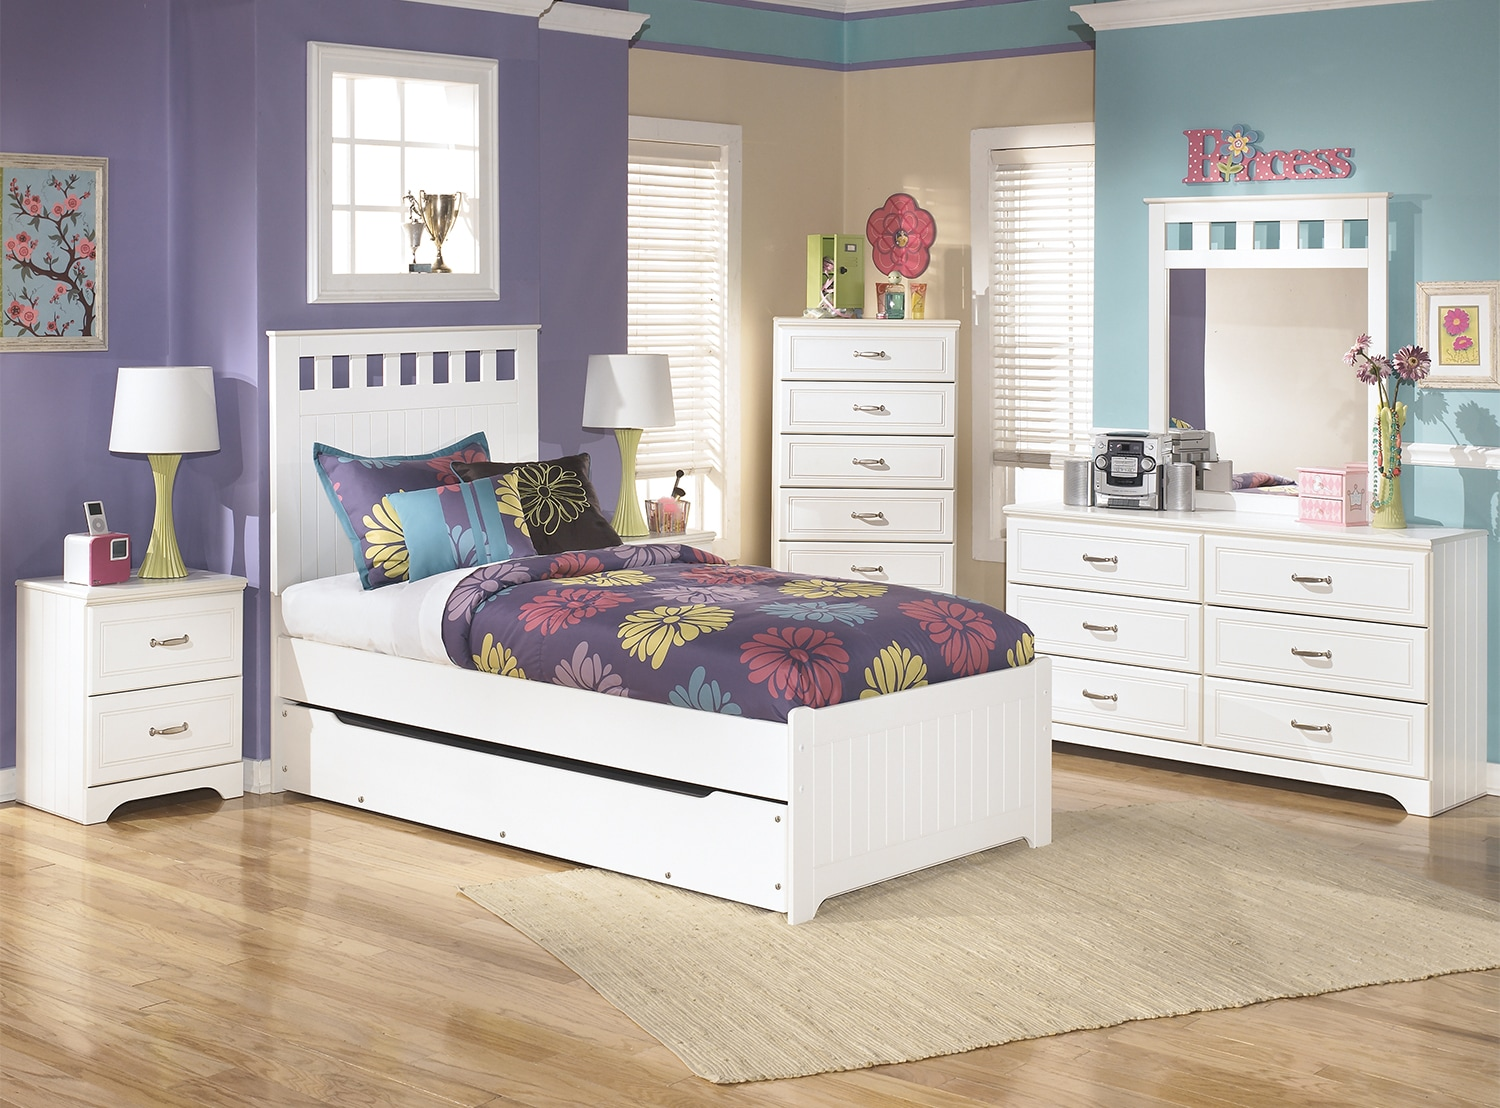 Lulu 8-Piece Twin Panel Bed Package with Trundle